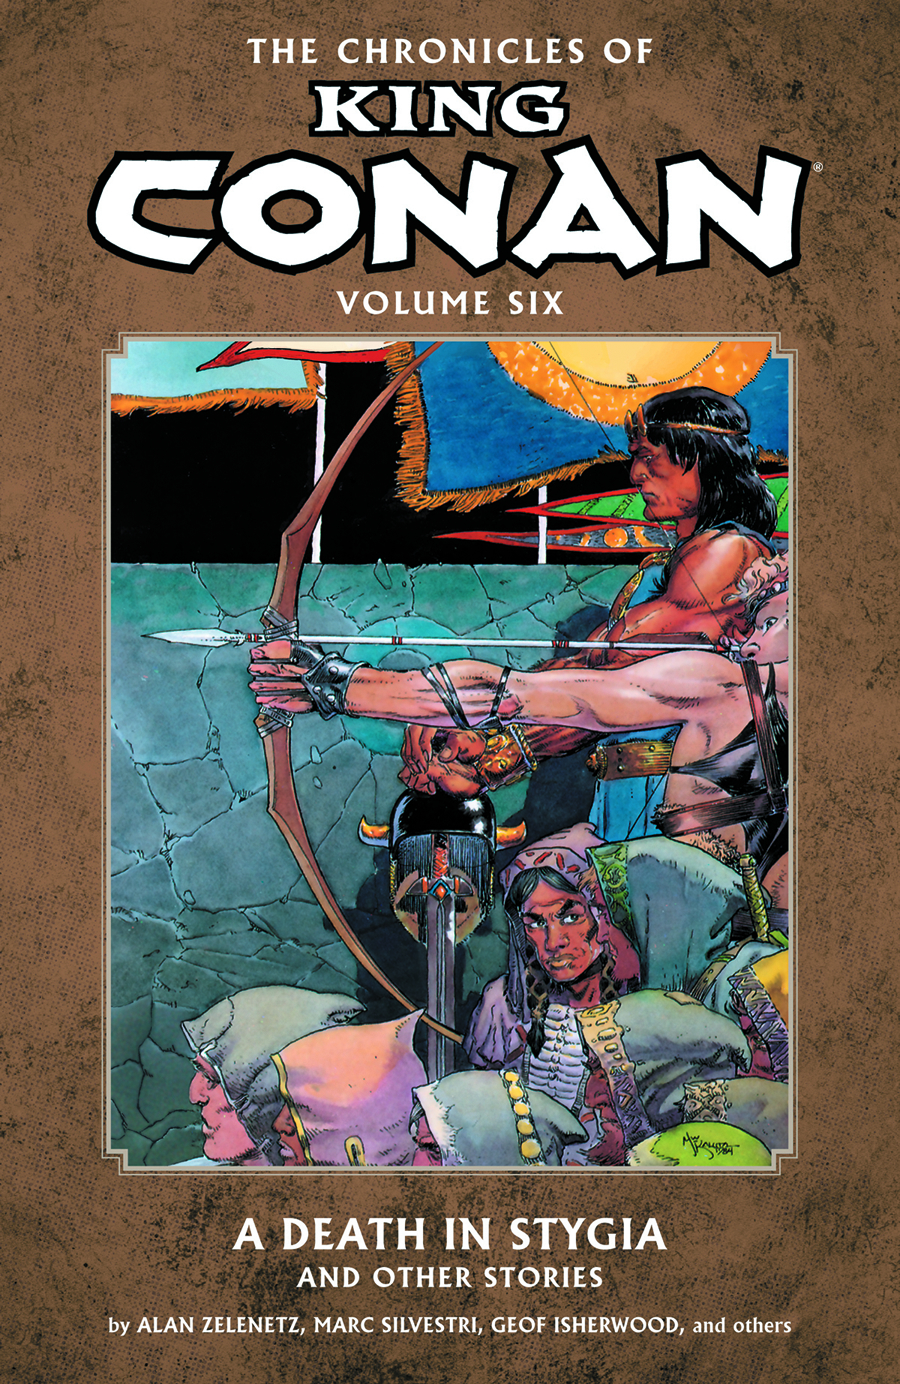 CHRONICLES OF KING CONAN TP VOL 06 DEATH IN STYGIA